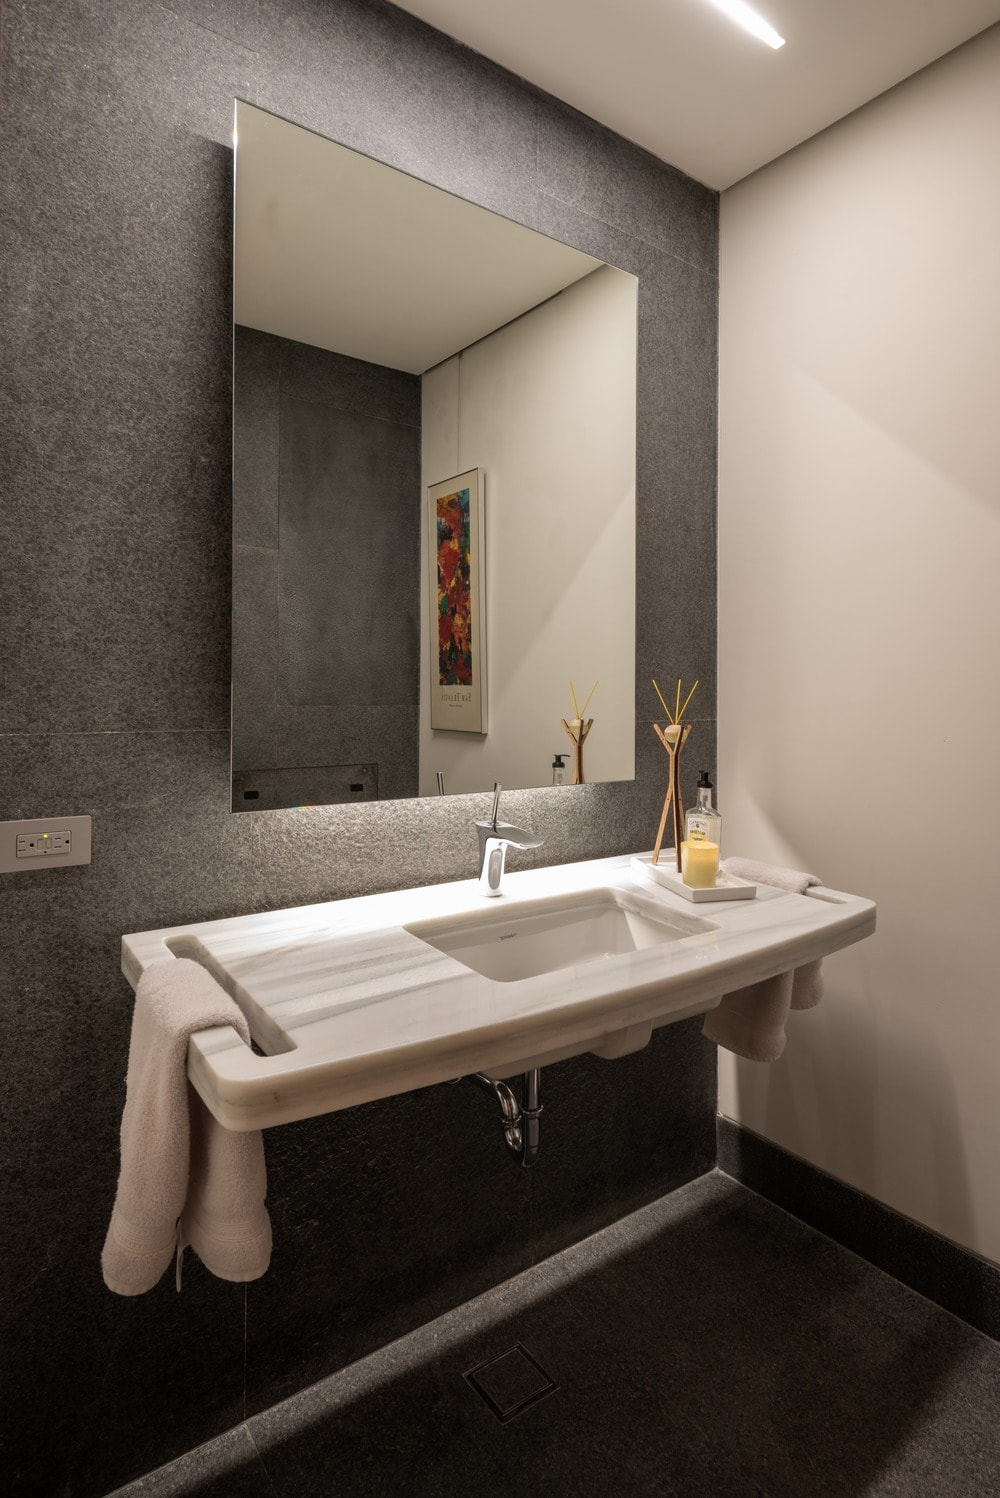 This other bathroom also has a floating white marble sink with a built-in towel rack and topped with a large wall-mounted frame-less mirror.